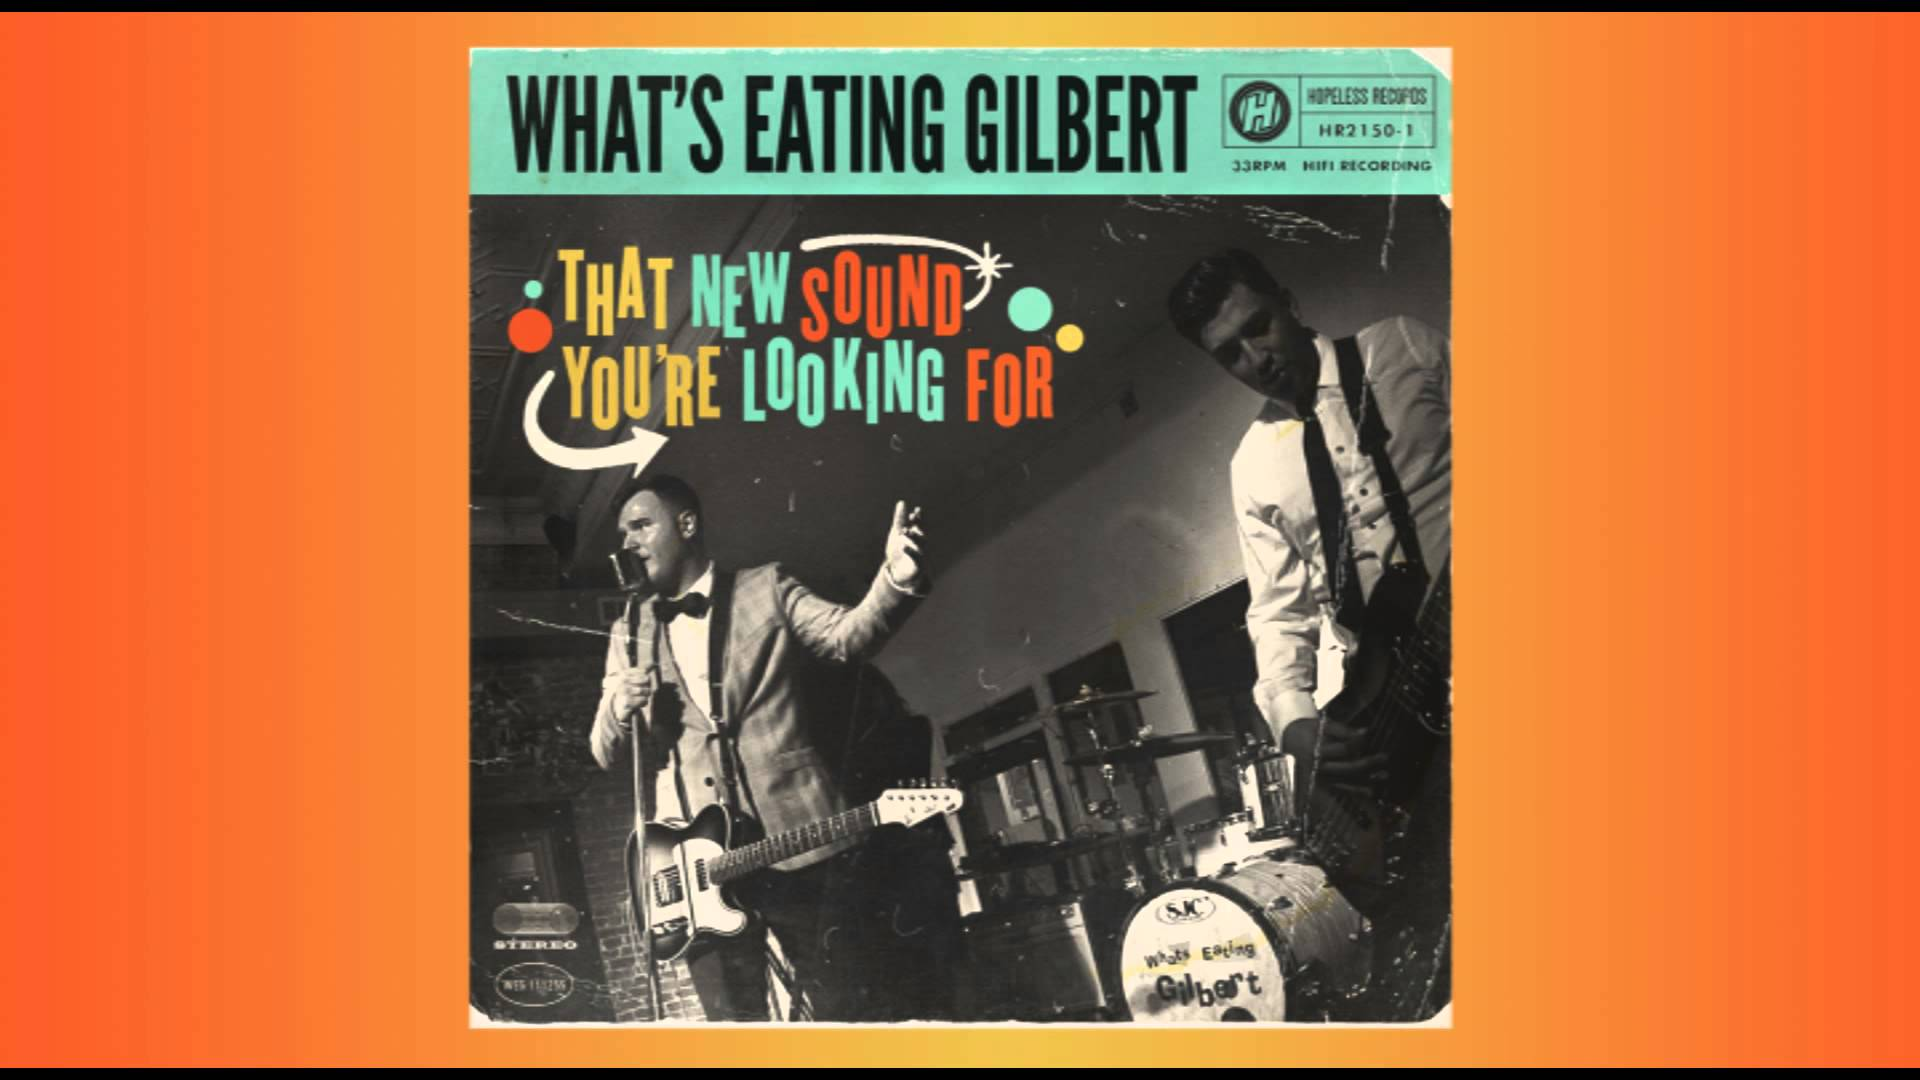 What's Eating Gilbert - Ain't Been Happy With Me